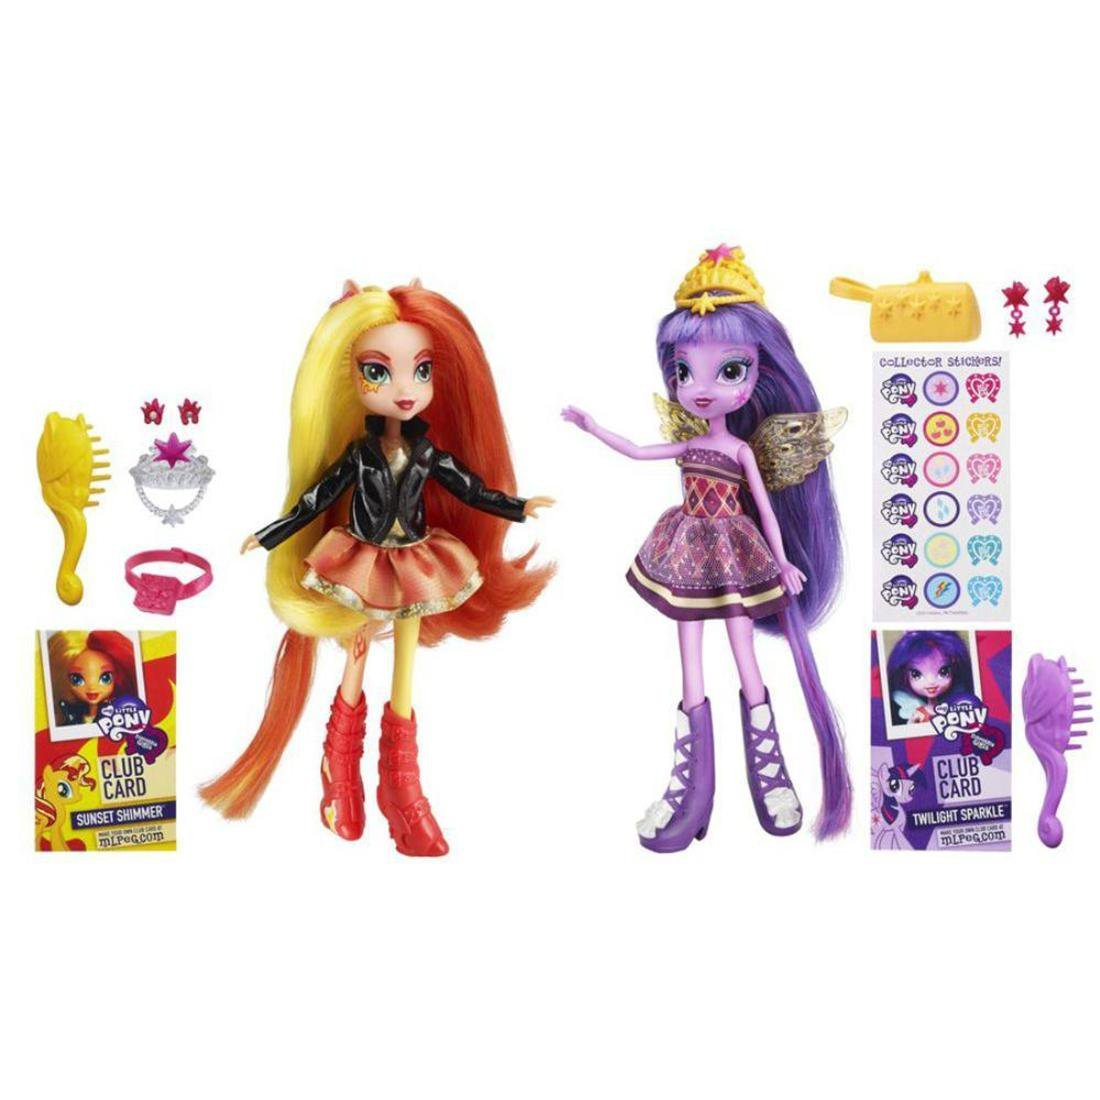 Boneca My Little Pony Equestria Girls - Hasbro Ref:a3997